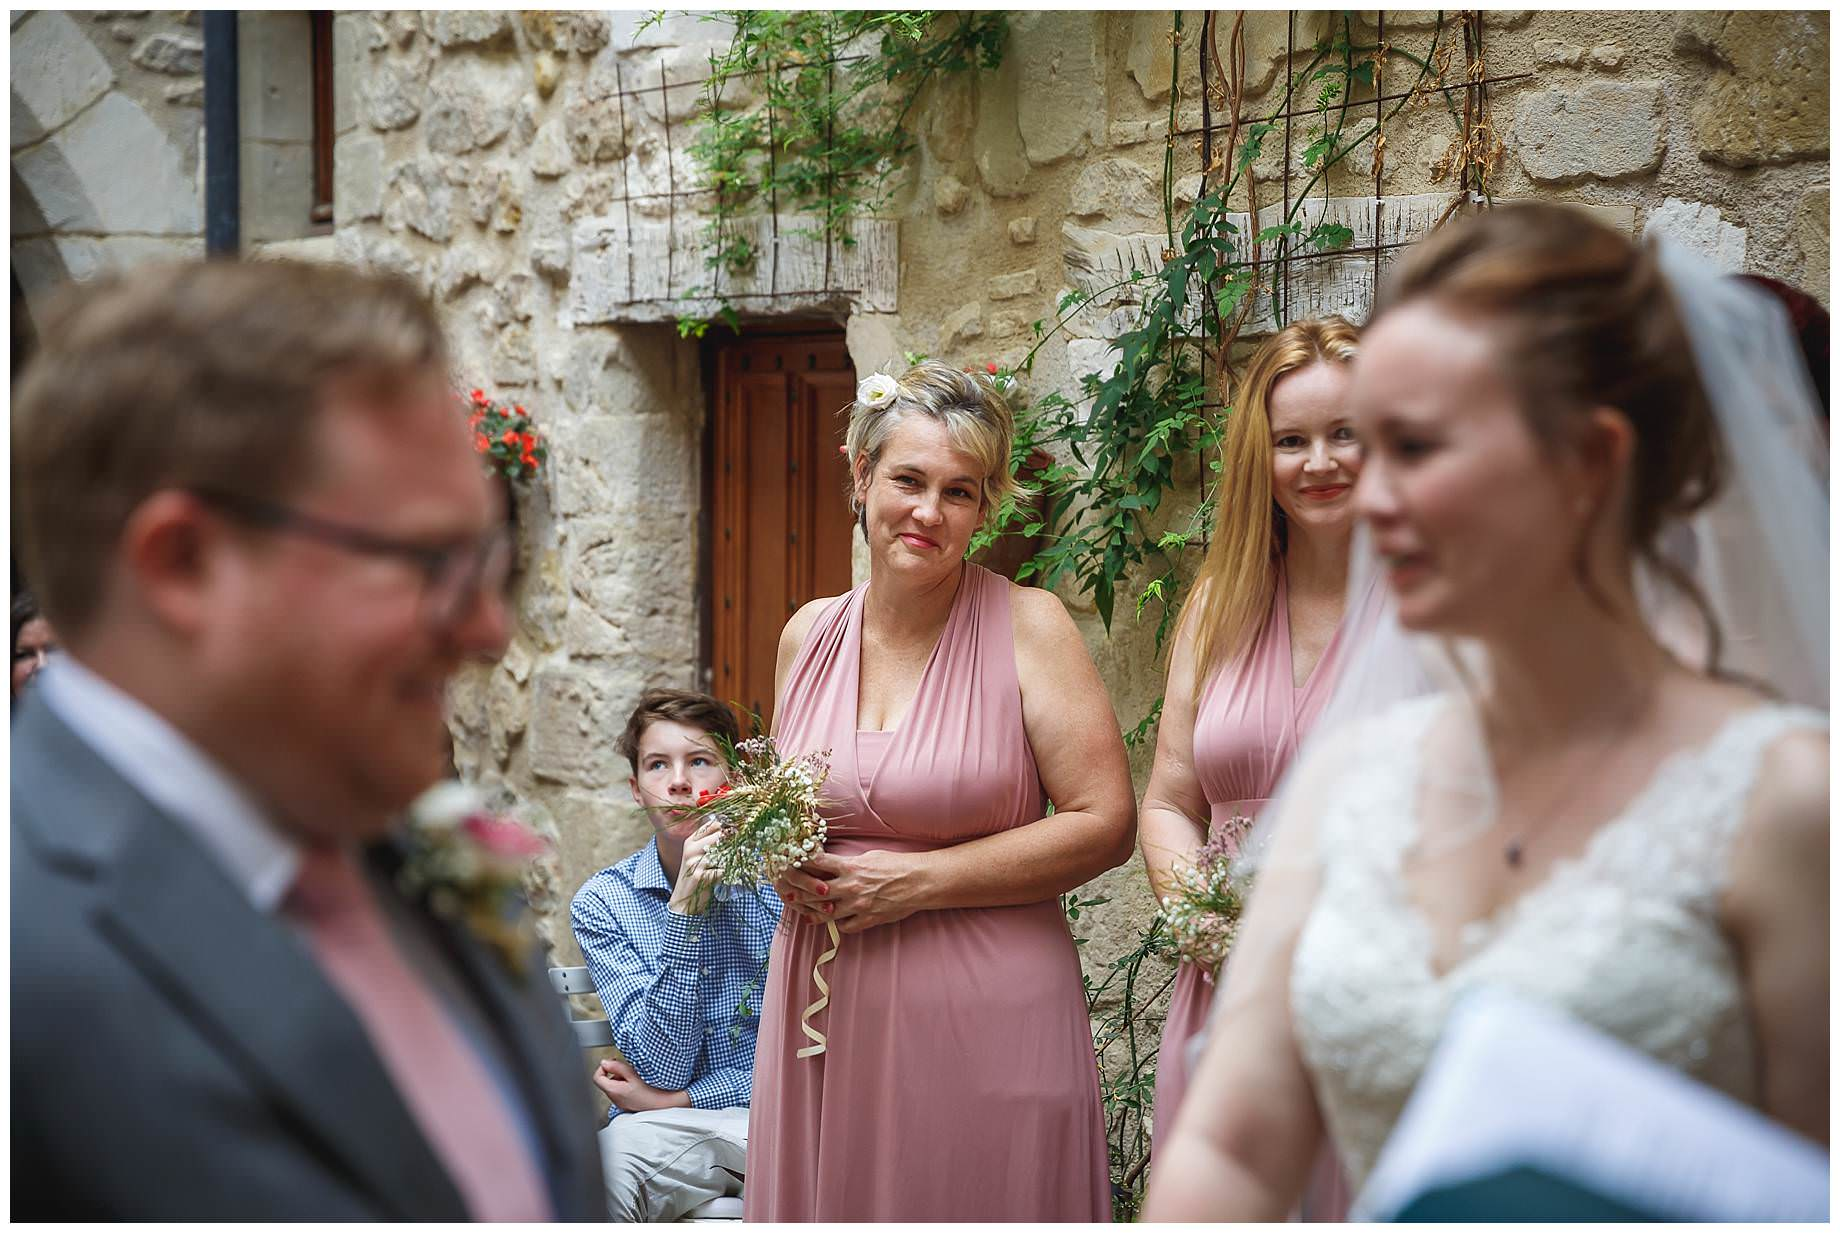 guests watch the wedding at Chateau Brametourte